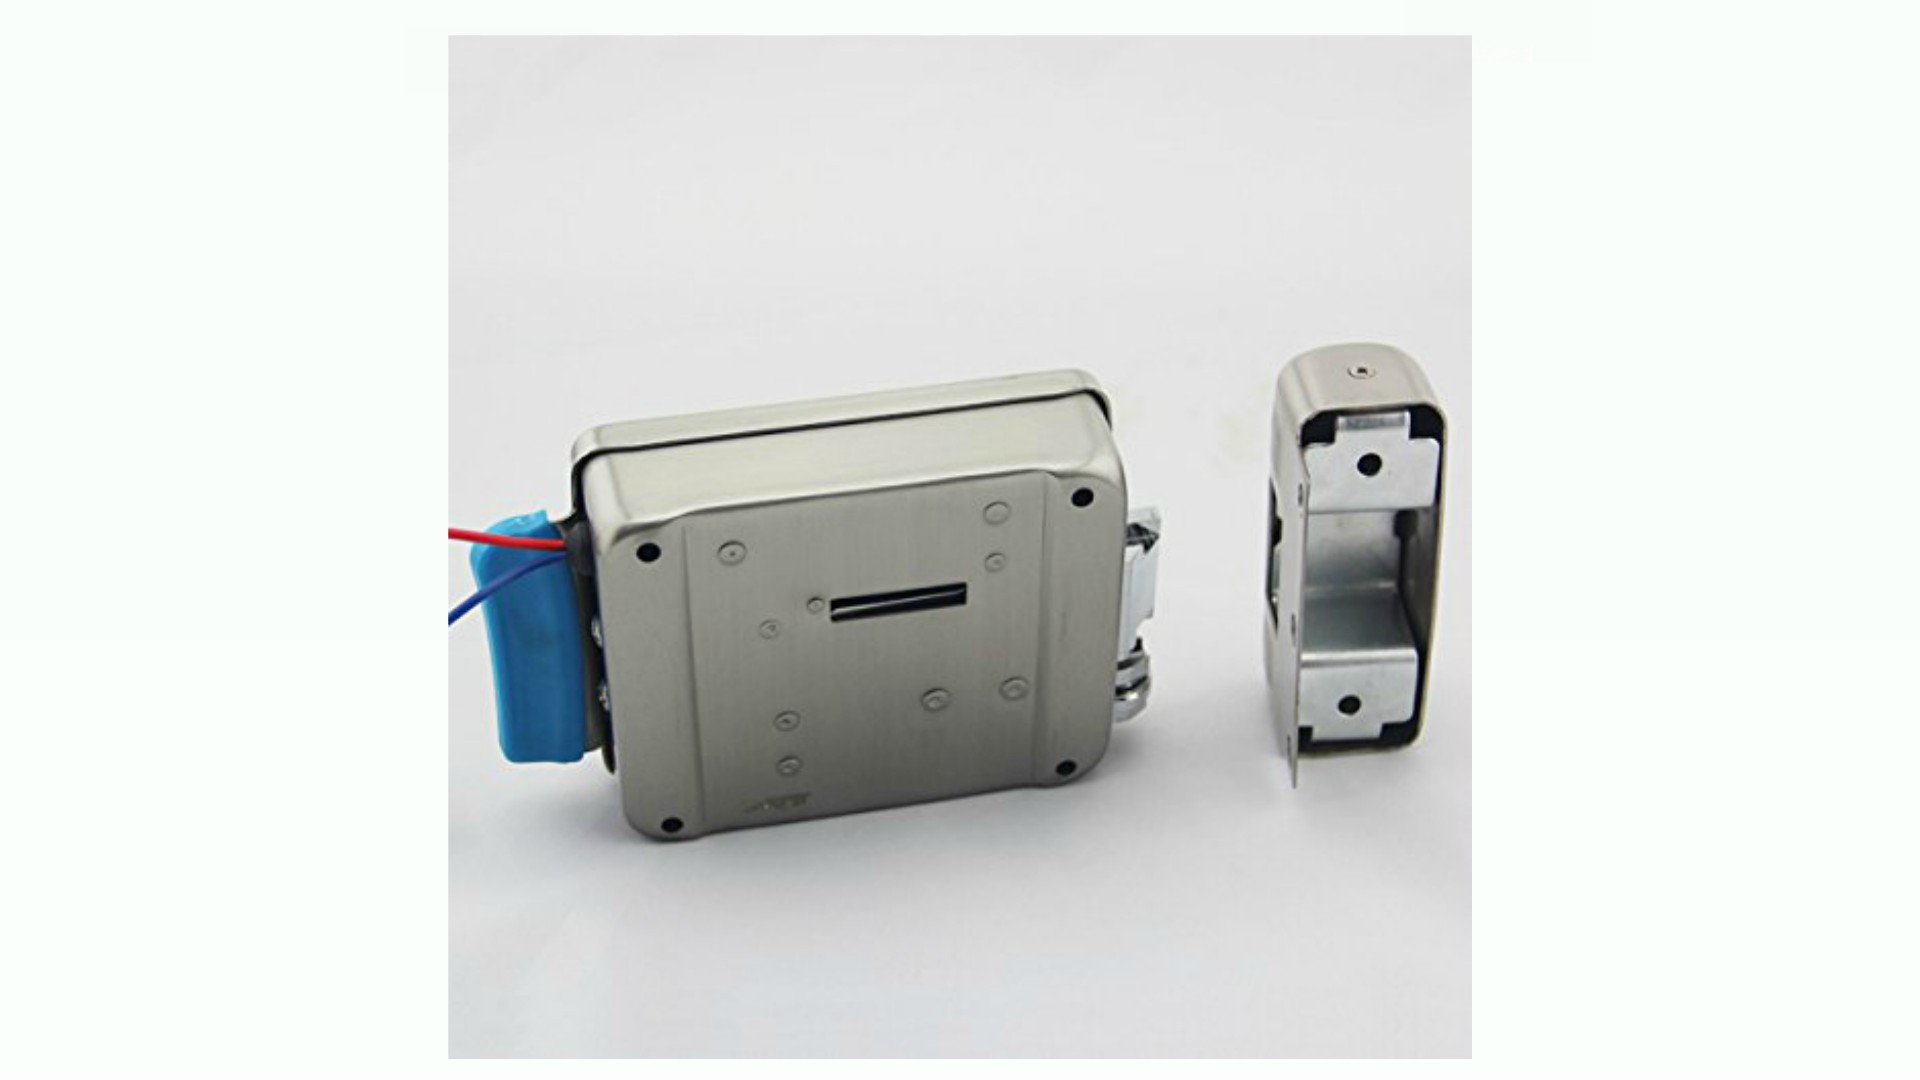 Electric Gate Lock ATI 01X Securely Buzz Visitors In Or Out Remotely: Wireless Remote Controls, Chime, Exit Button, Power Supply, 50' Electrical Cable (Uses Yale Keyway) by ATI (Image #3)